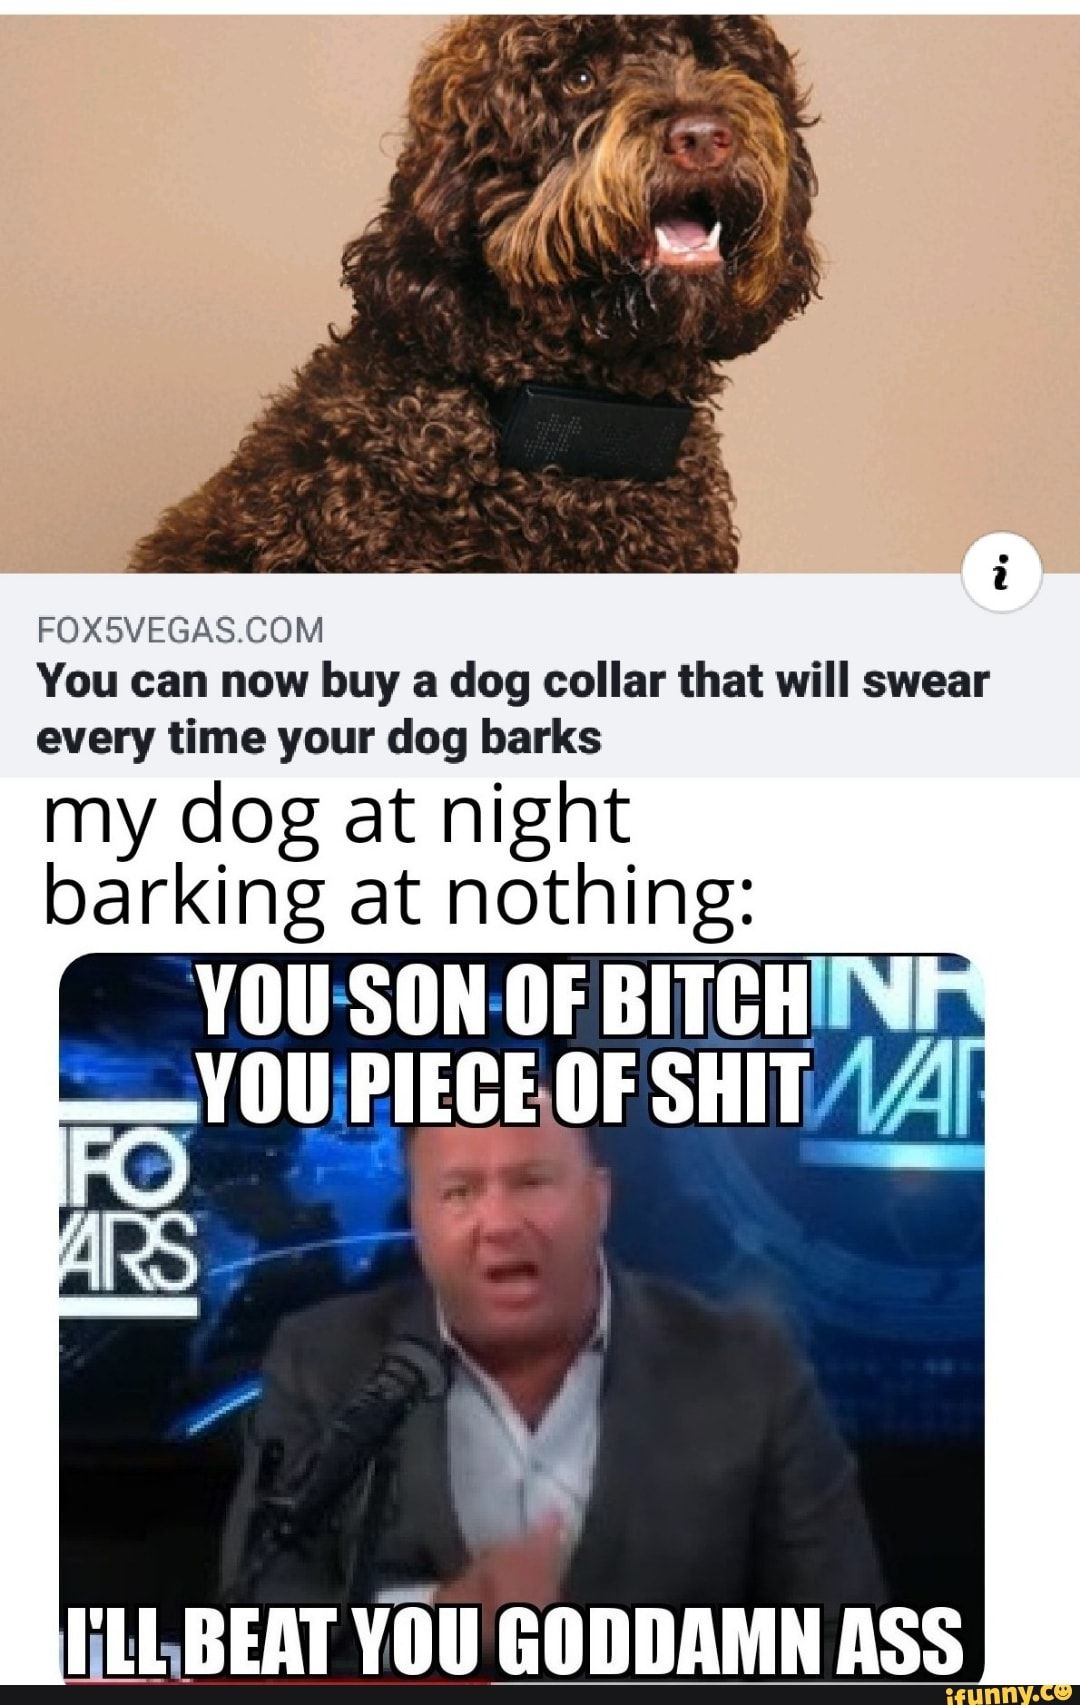 You can now buy a dog collar that will swear every time your dog barks my dog at night barking at nothing: ELLBEAT YOU GODDAMN ASS - )